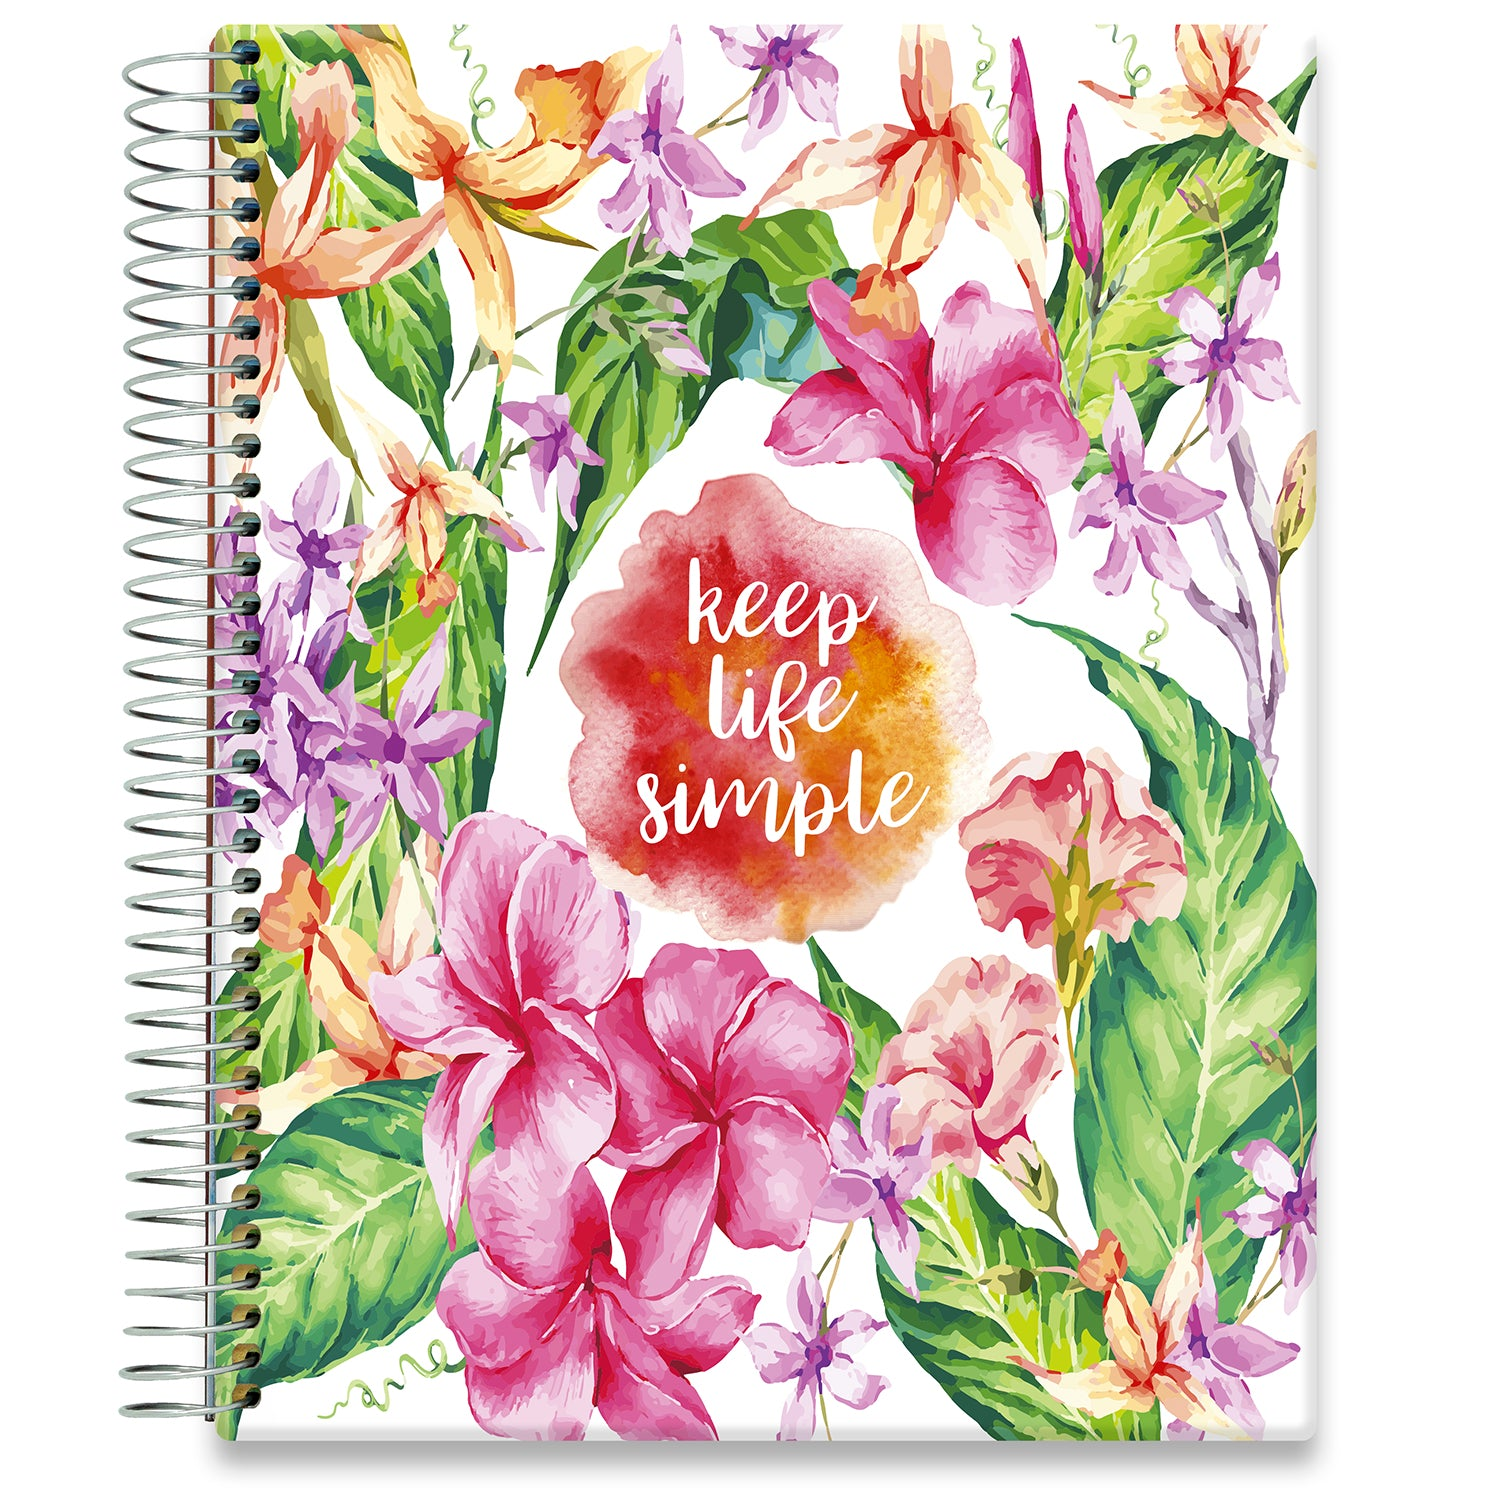 Planner 2021-2022 • April 2021 to June 2022 Academic Year • 8.5x11 Hardcover • Keep Life Simple